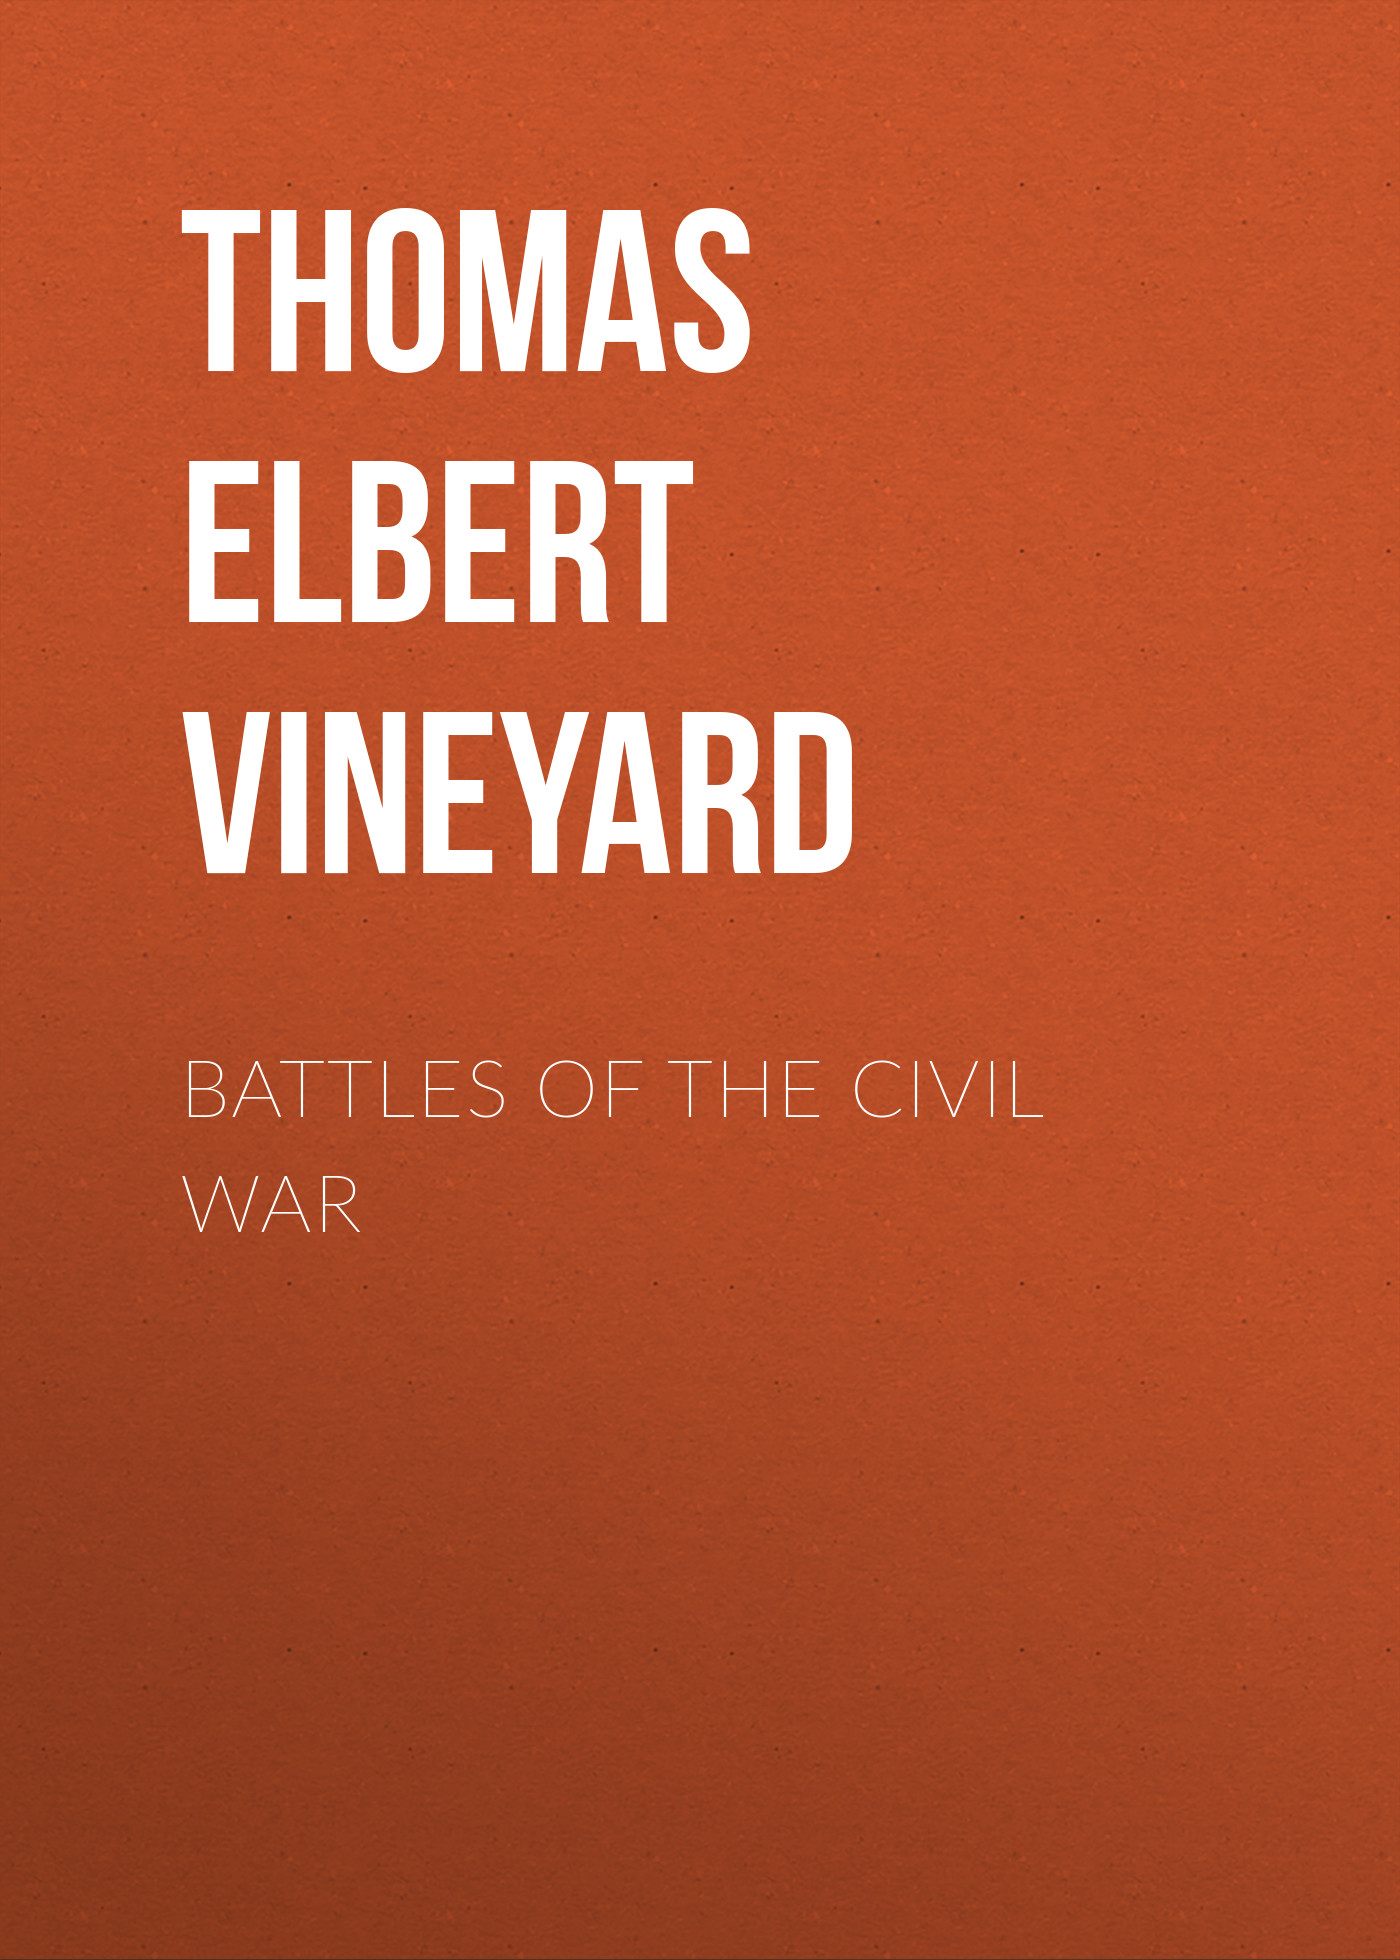 Thomas Elbert Vineyard Battles of the Civil War the captain america 15cm civil war 1 6 joint movable pvc action figure model toy